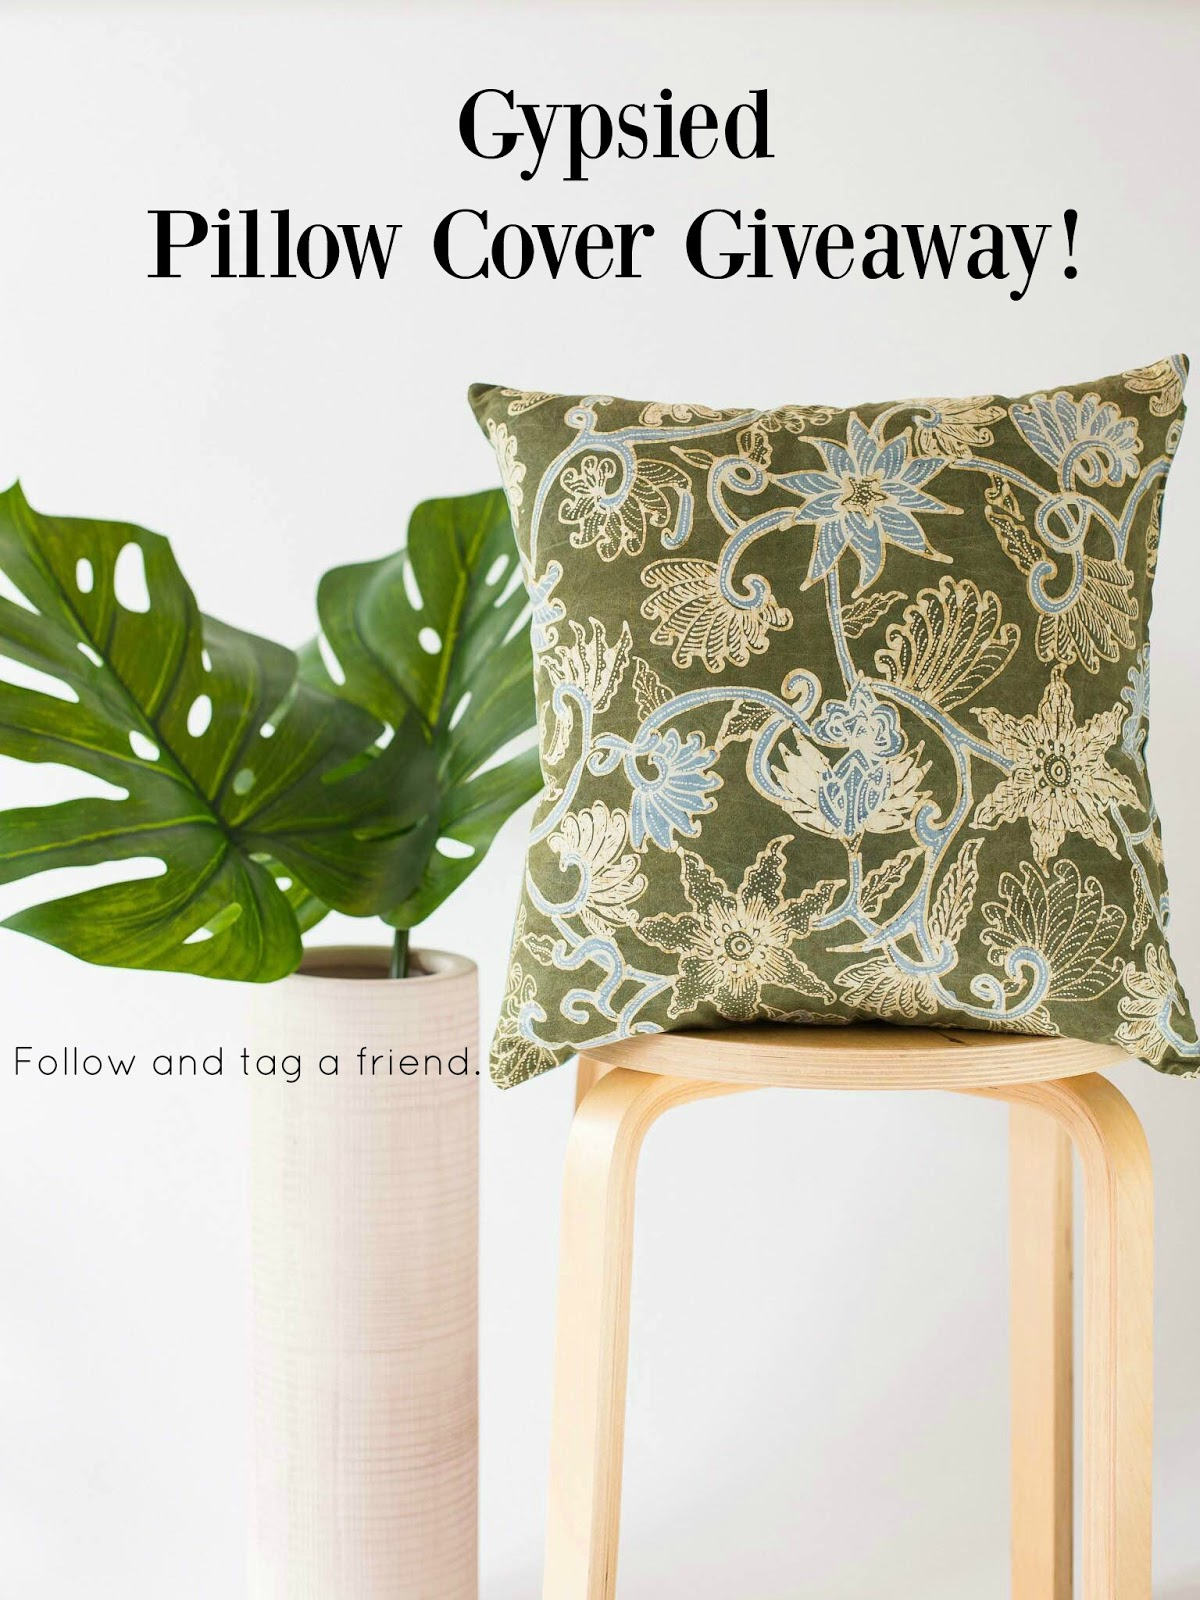 Gypsied pillow cover